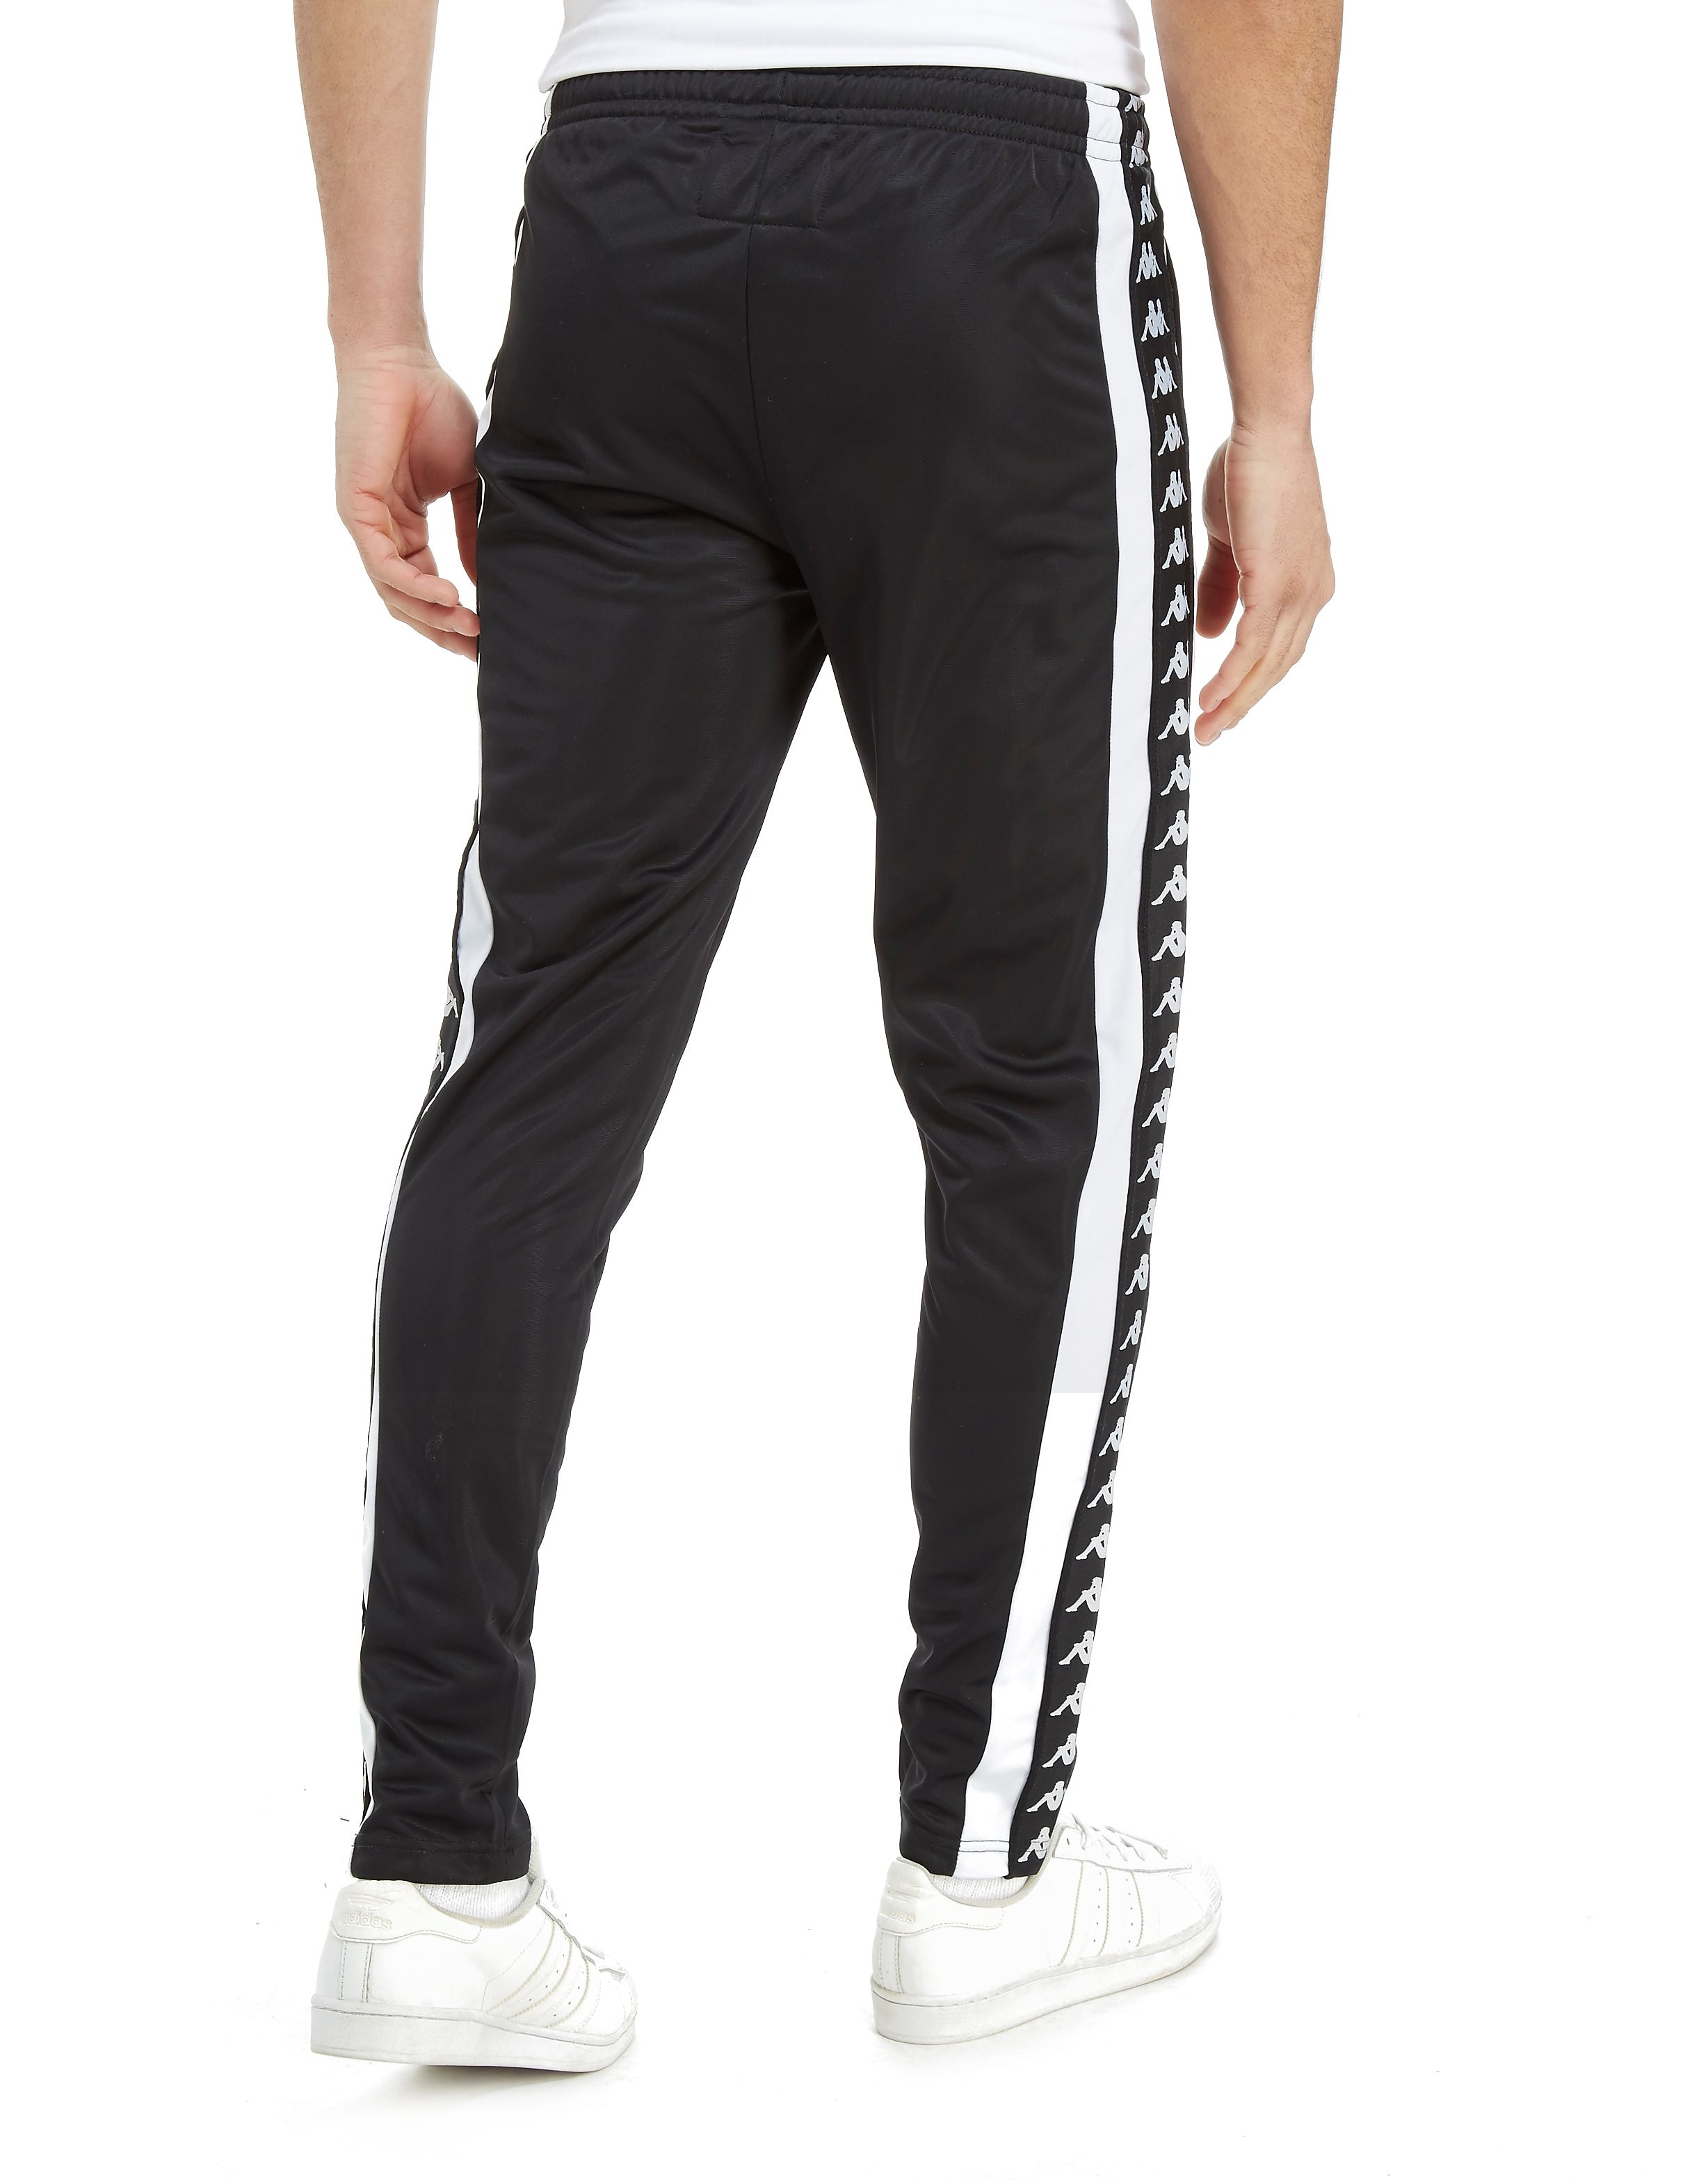 Kappa Authentic Luis Track Pants